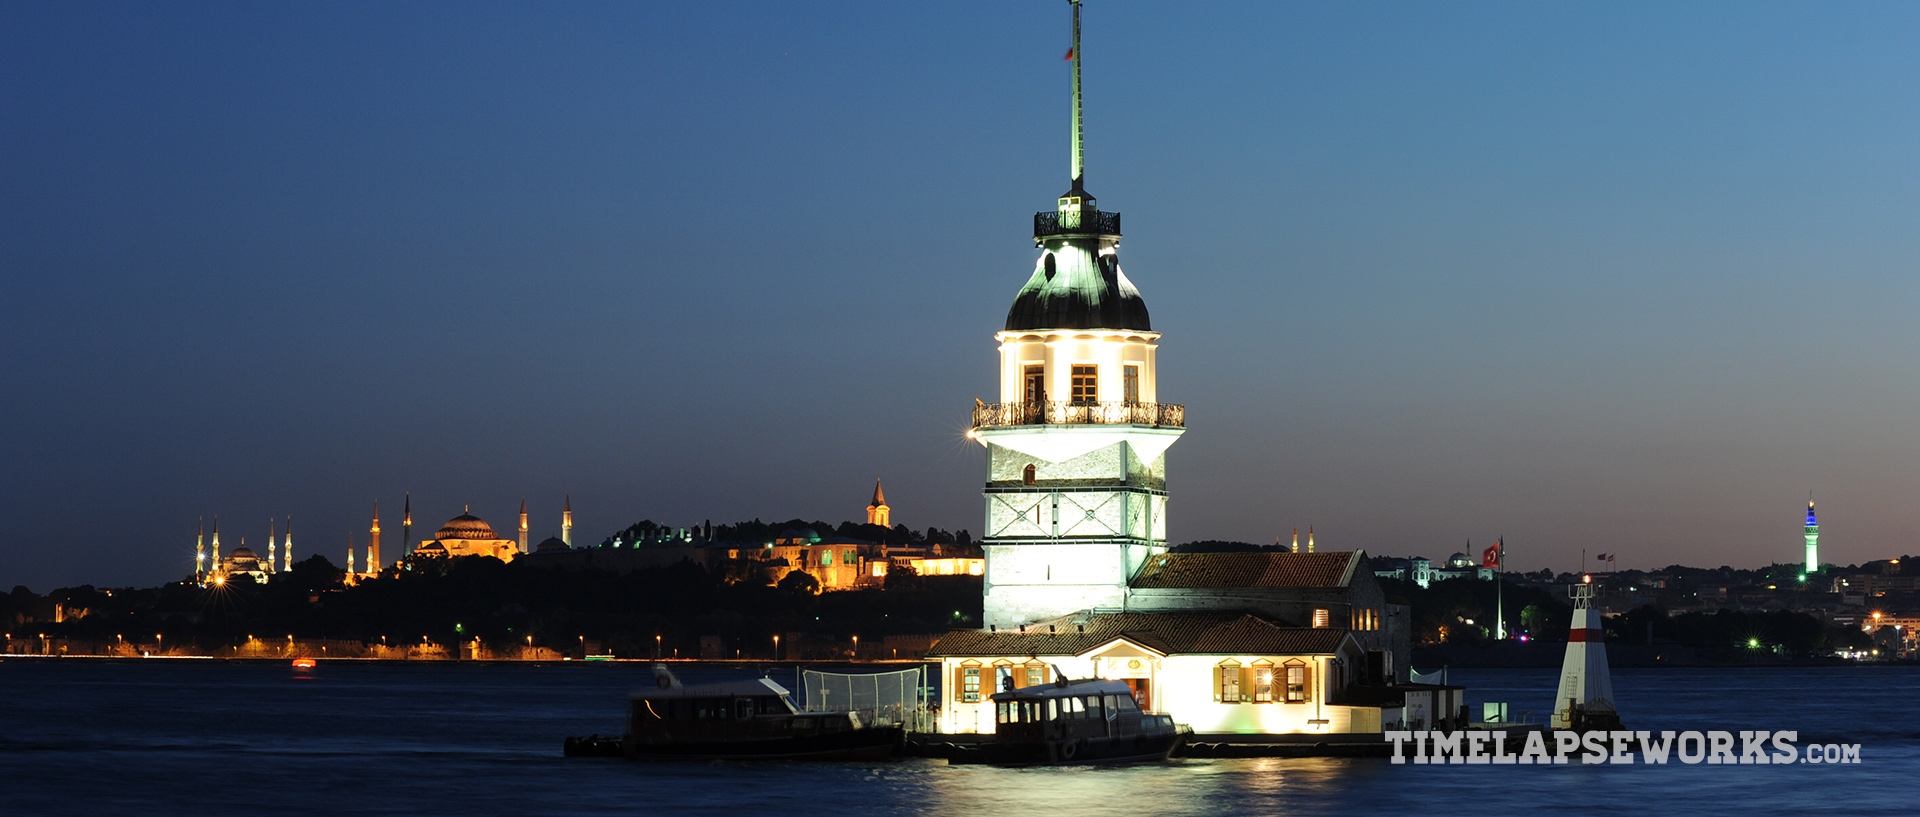 istanbul timelapse // istanbul in motion // maiden's tower